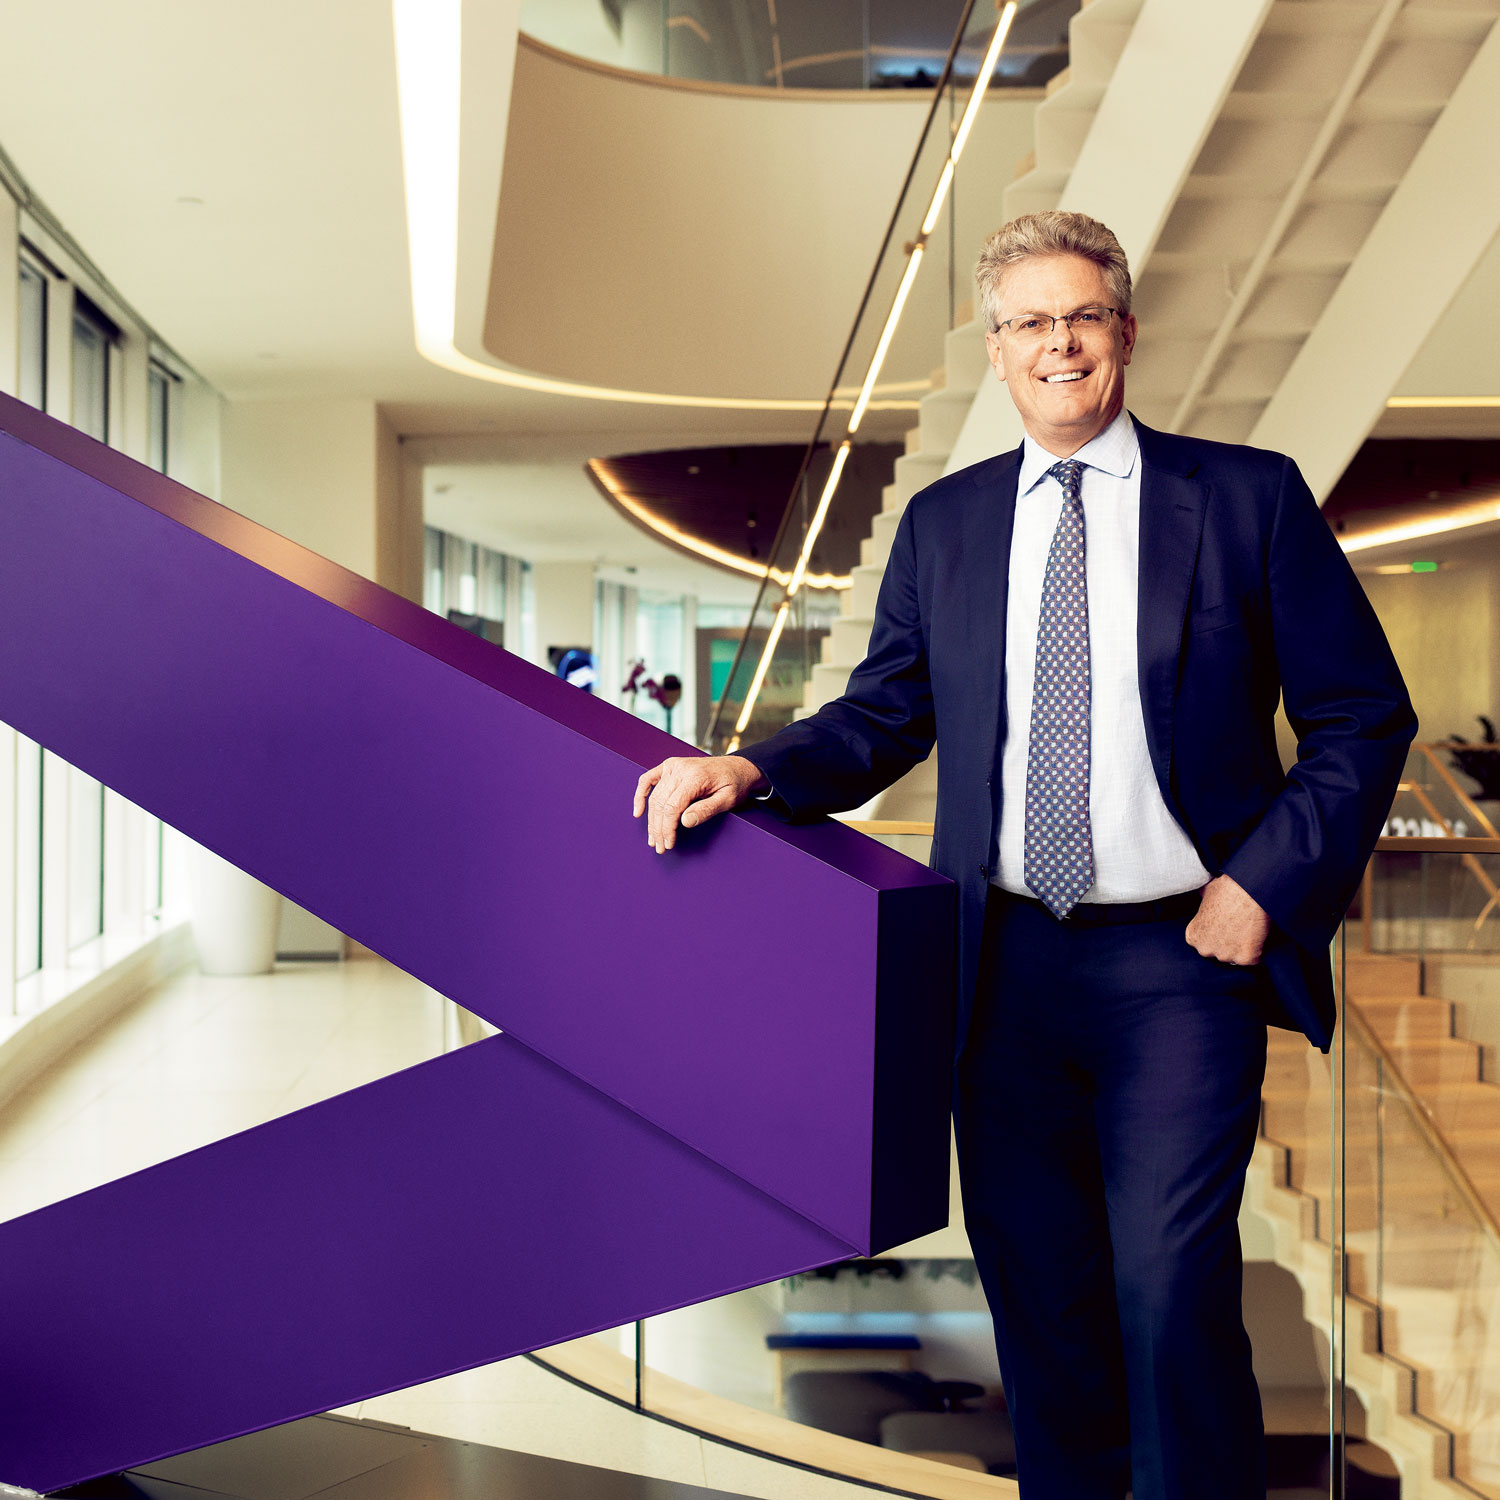 Accenture Strategy's CEO on Meeting IQ with EQ | The University of